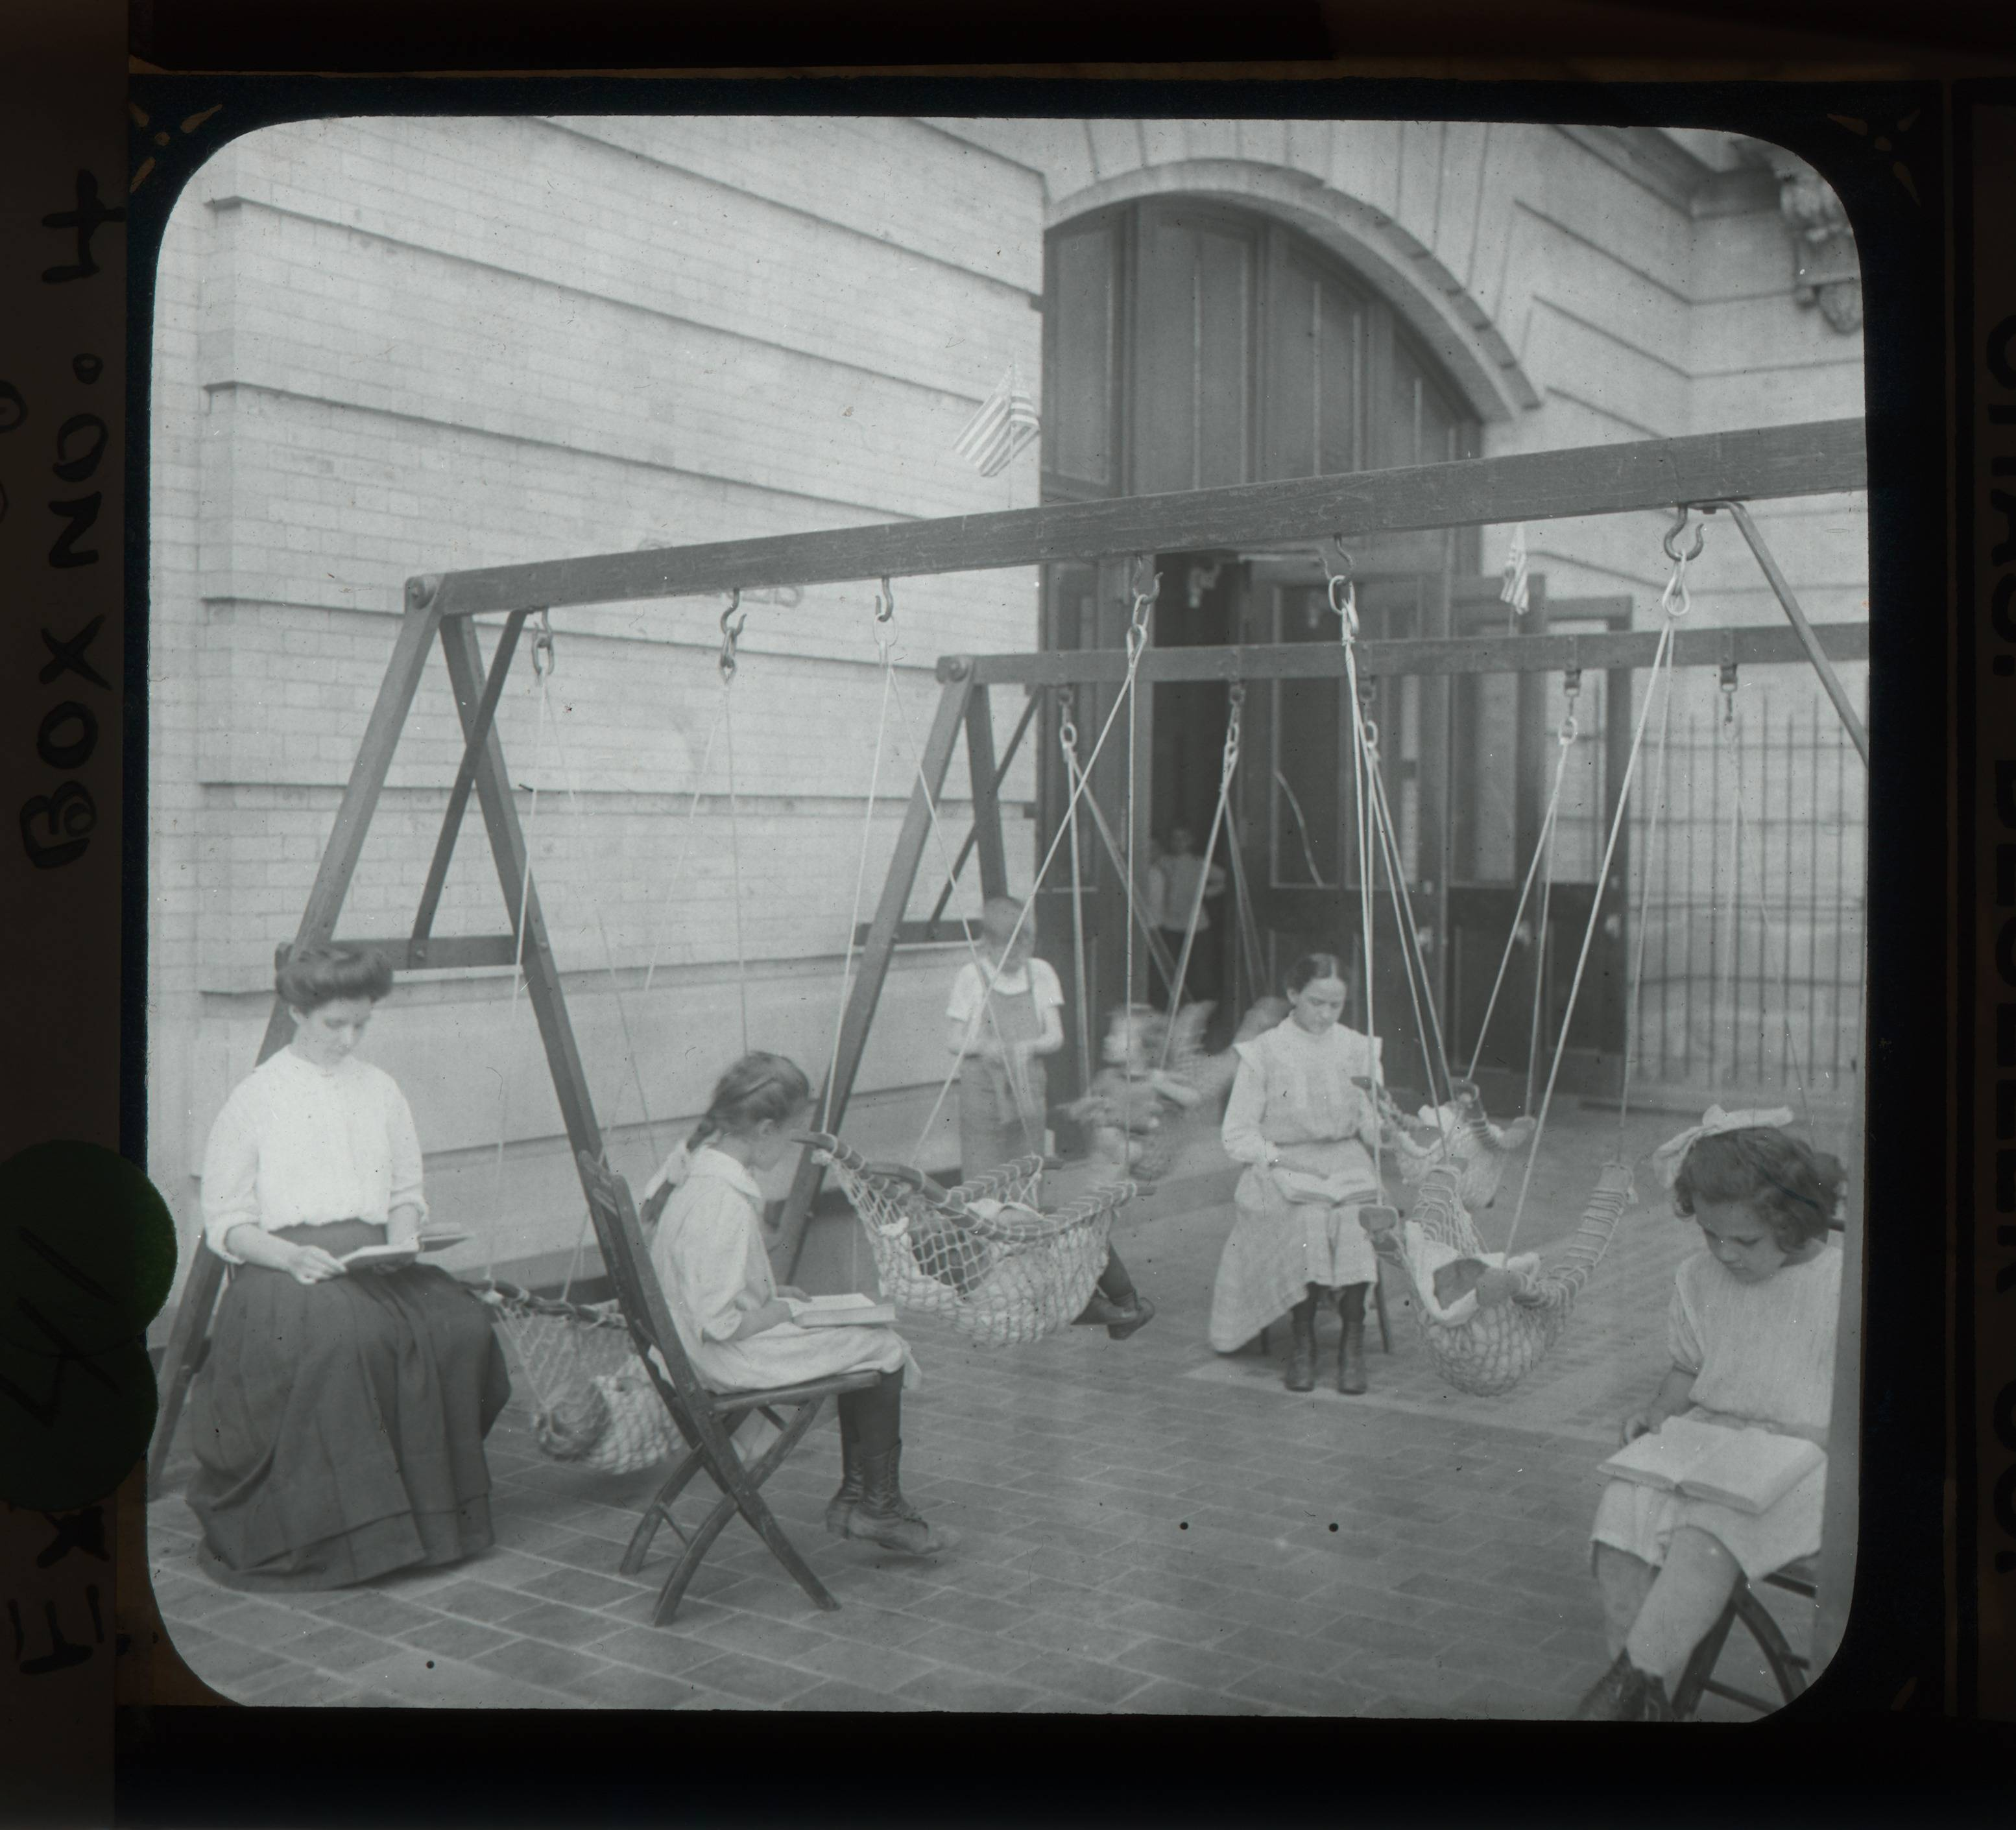 """Women and girls reading near swingset where younger children are suspended in hammock like swings, July 1910"" - Lewis Wickes Hine"